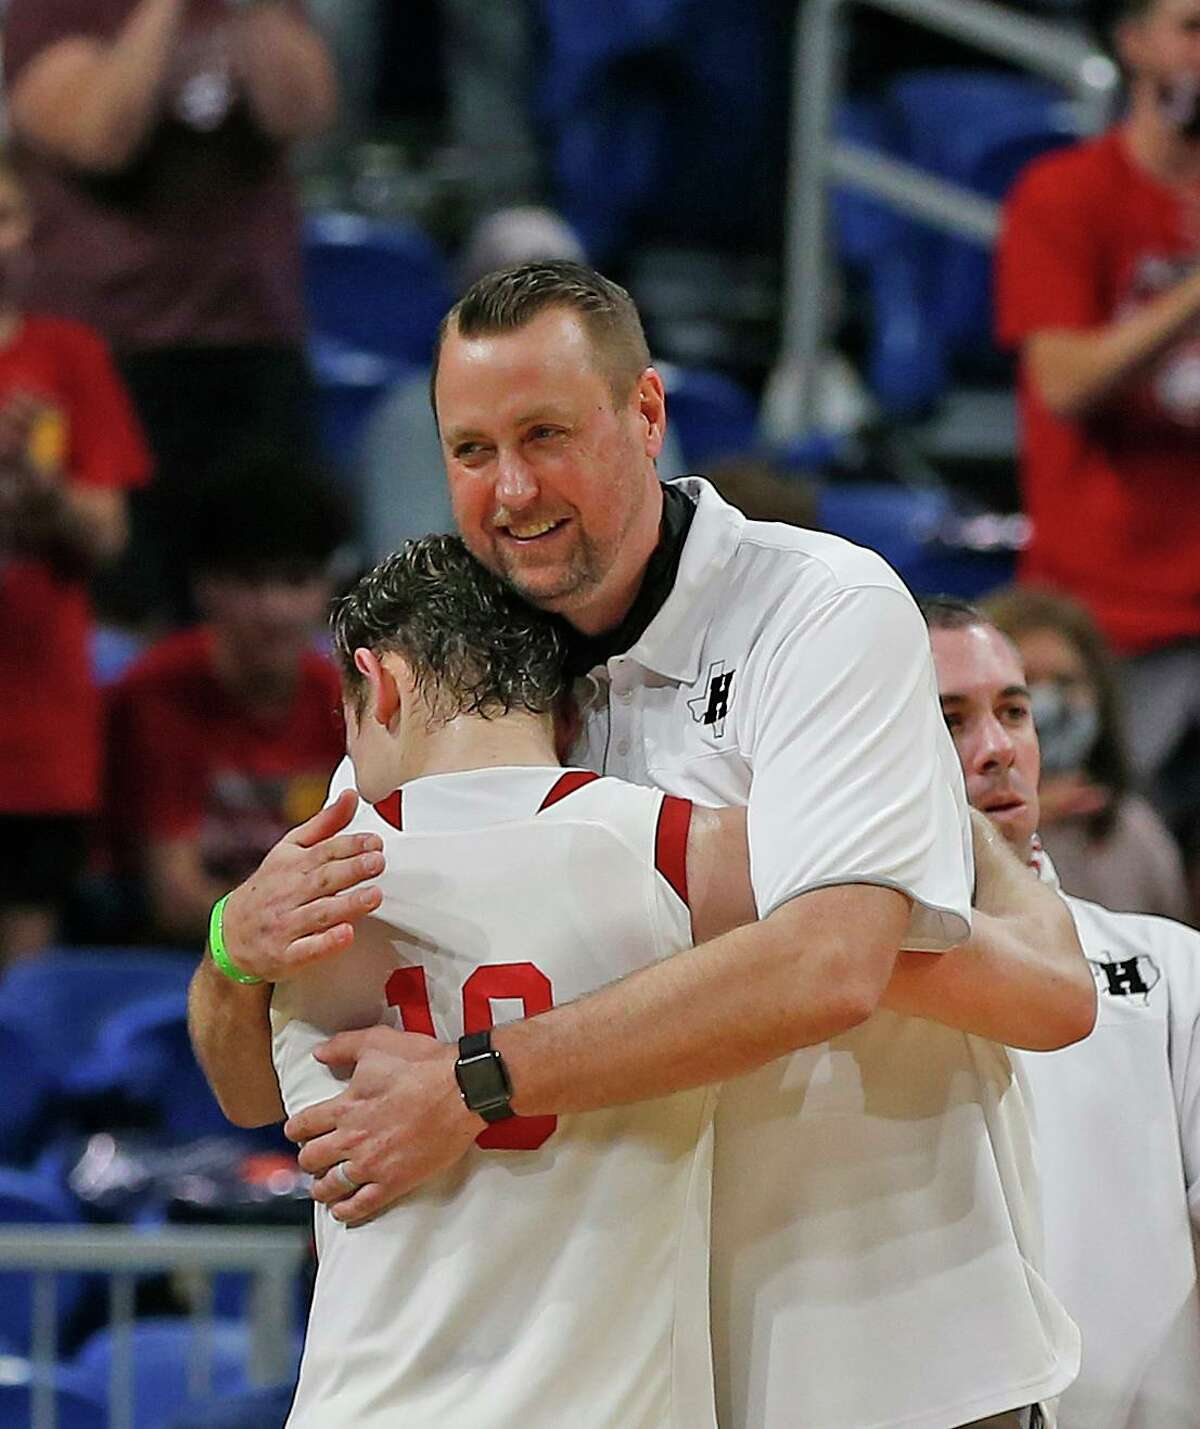 Huffman Hargrave Jacob Harvey #10 is huge by Huffman Hargrave head coach Scott Barrett at the end of the game. Huffman vs. Argyle for Class 4A state basketball championship at the Alamodome on Saturday, March 13, 2021